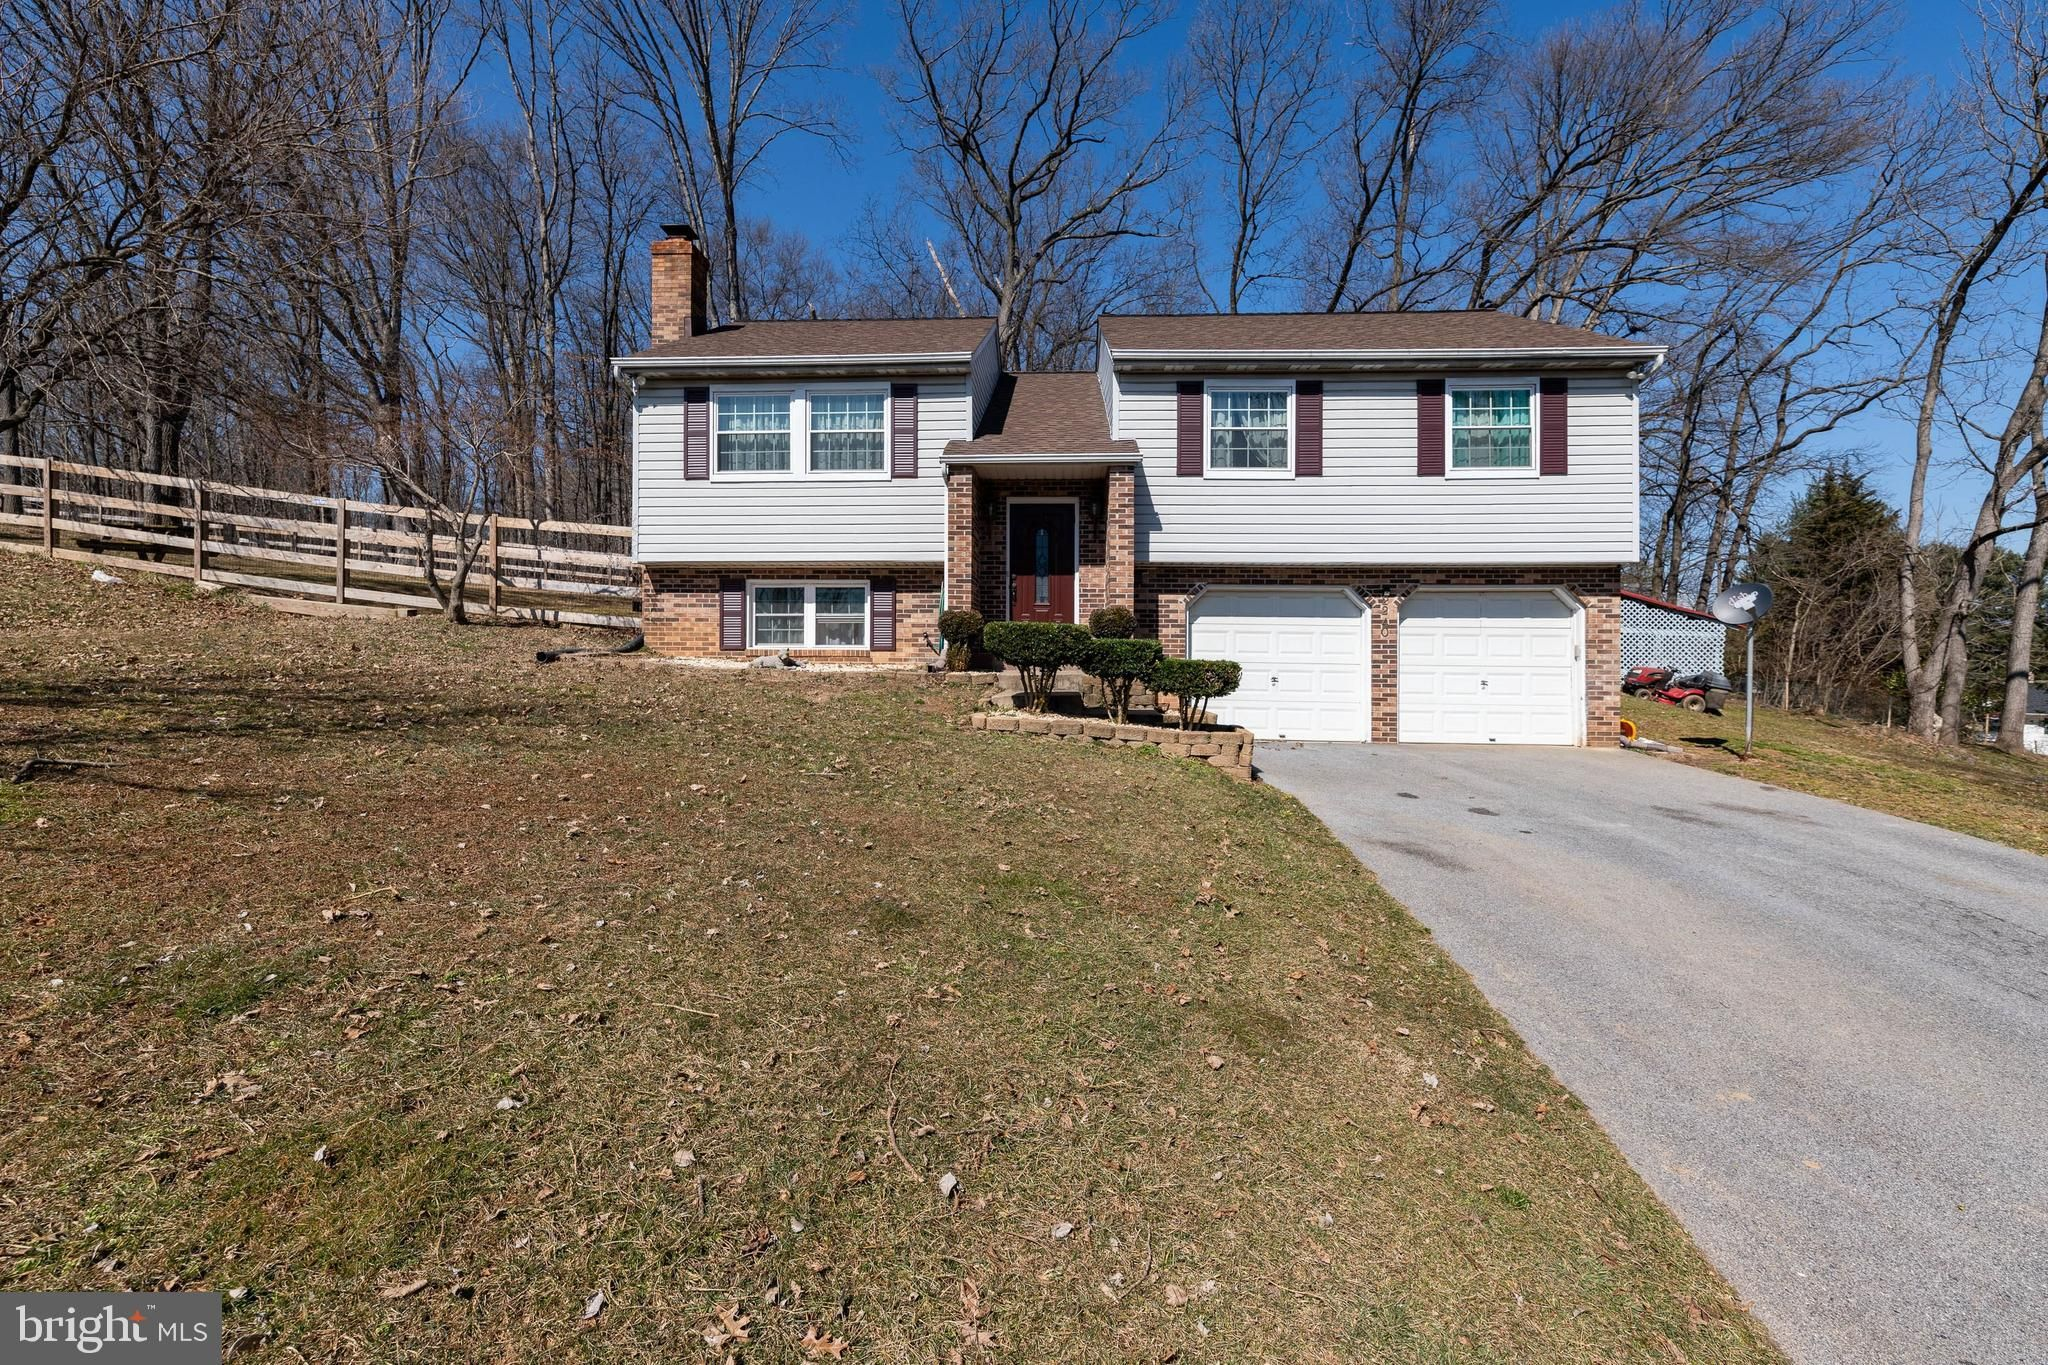 Outstanding 2240 Baltimore Blvd Finksburg Md 21048 3 Bed 3 Bath Single Family Home Mls Mdcr182272 36 Photos Trulia Home Interior And Landscaping Synyenasavecom